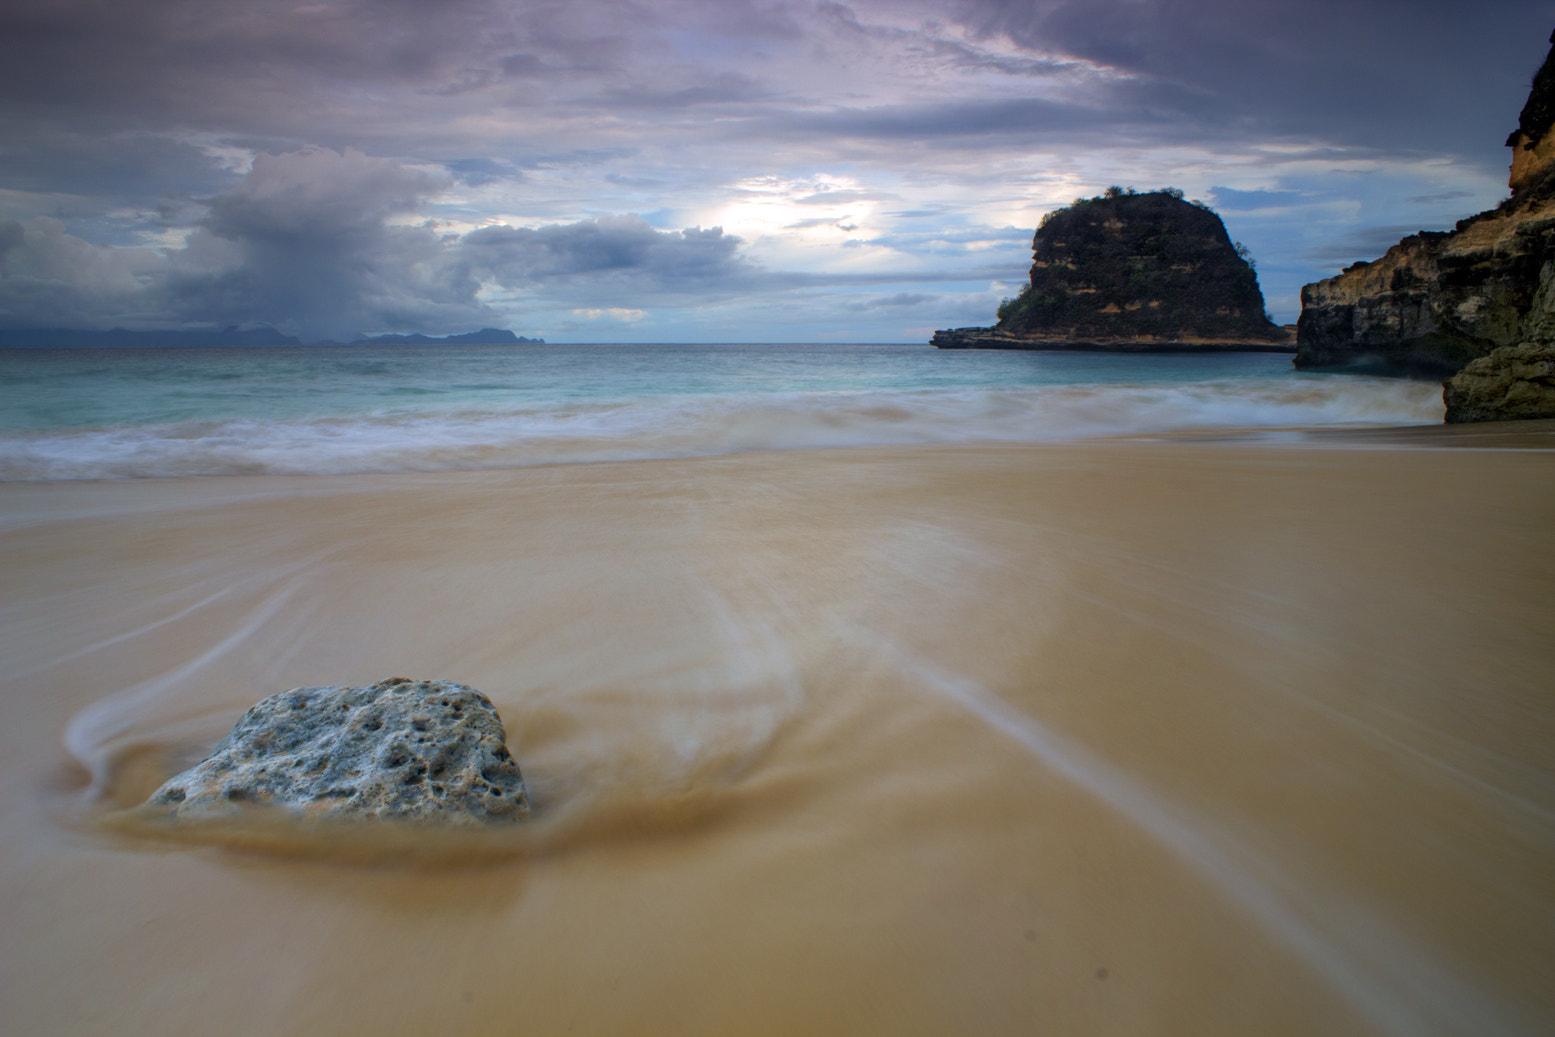 Photograph Rocks and Waves by Eep Ependi on 500px